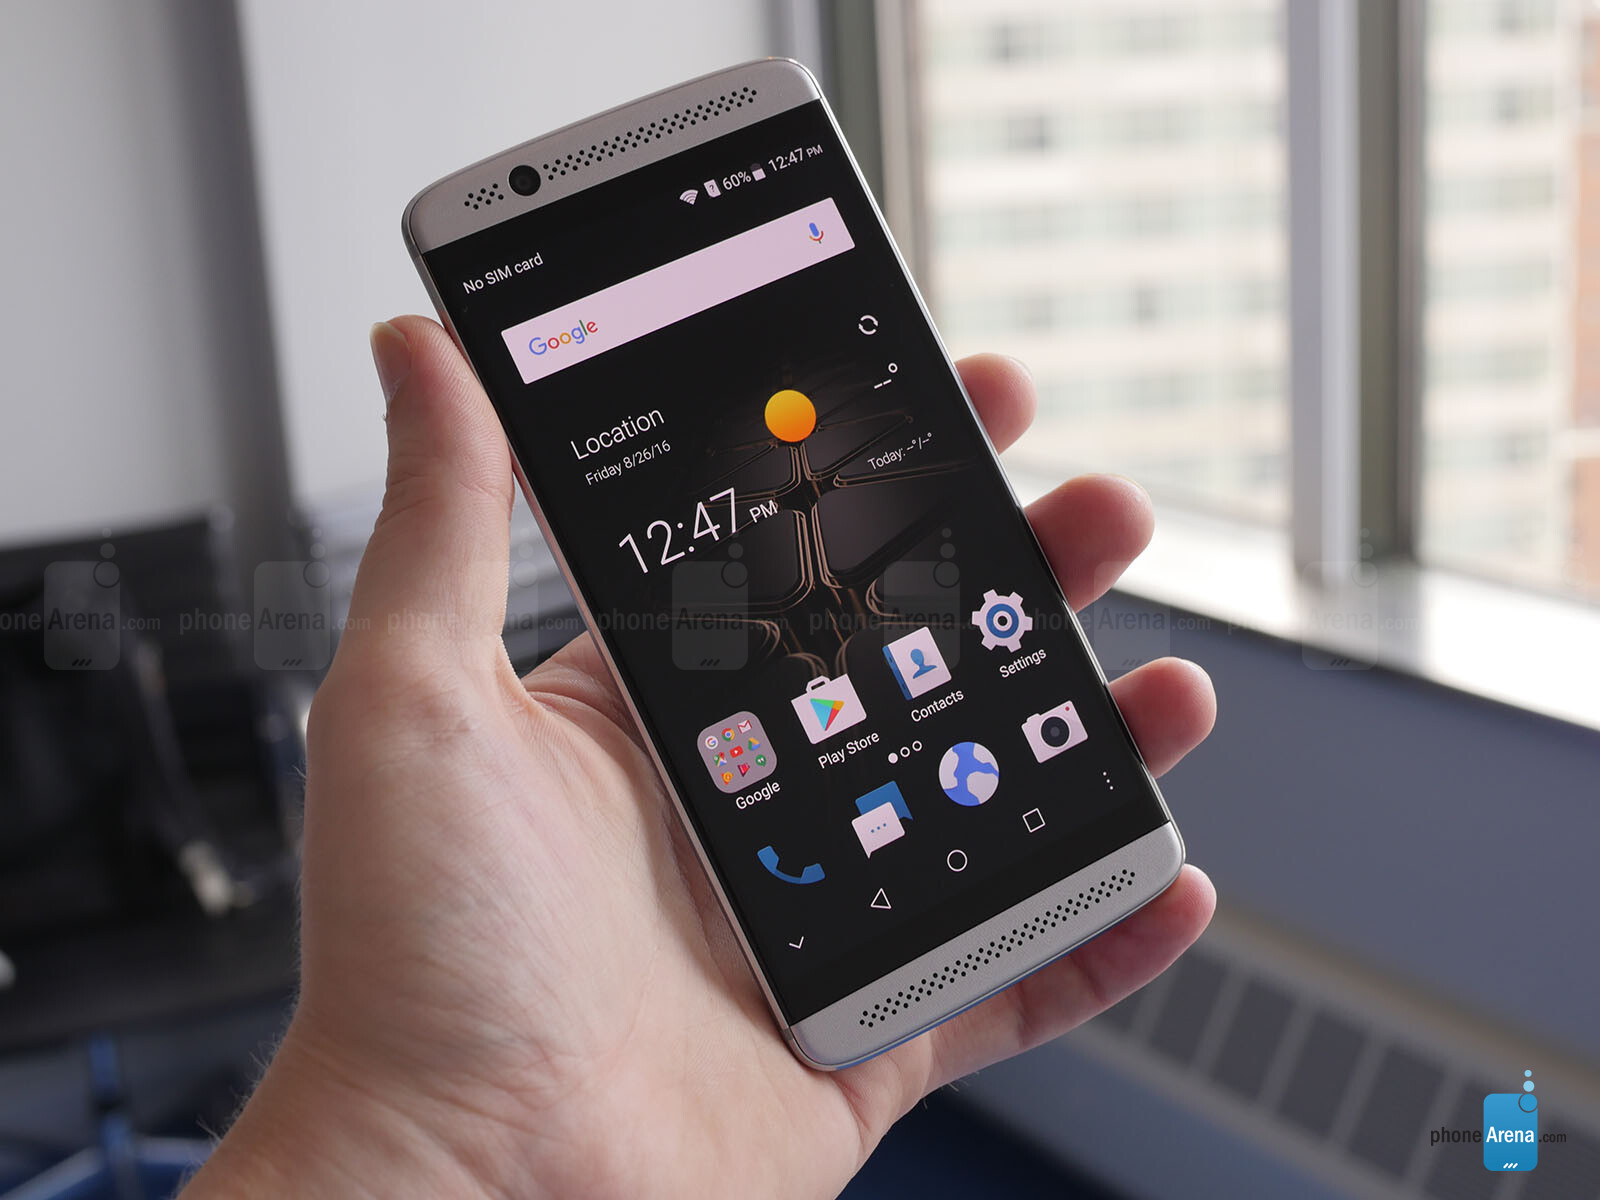 zte axon 7 mini phonearena you cant than